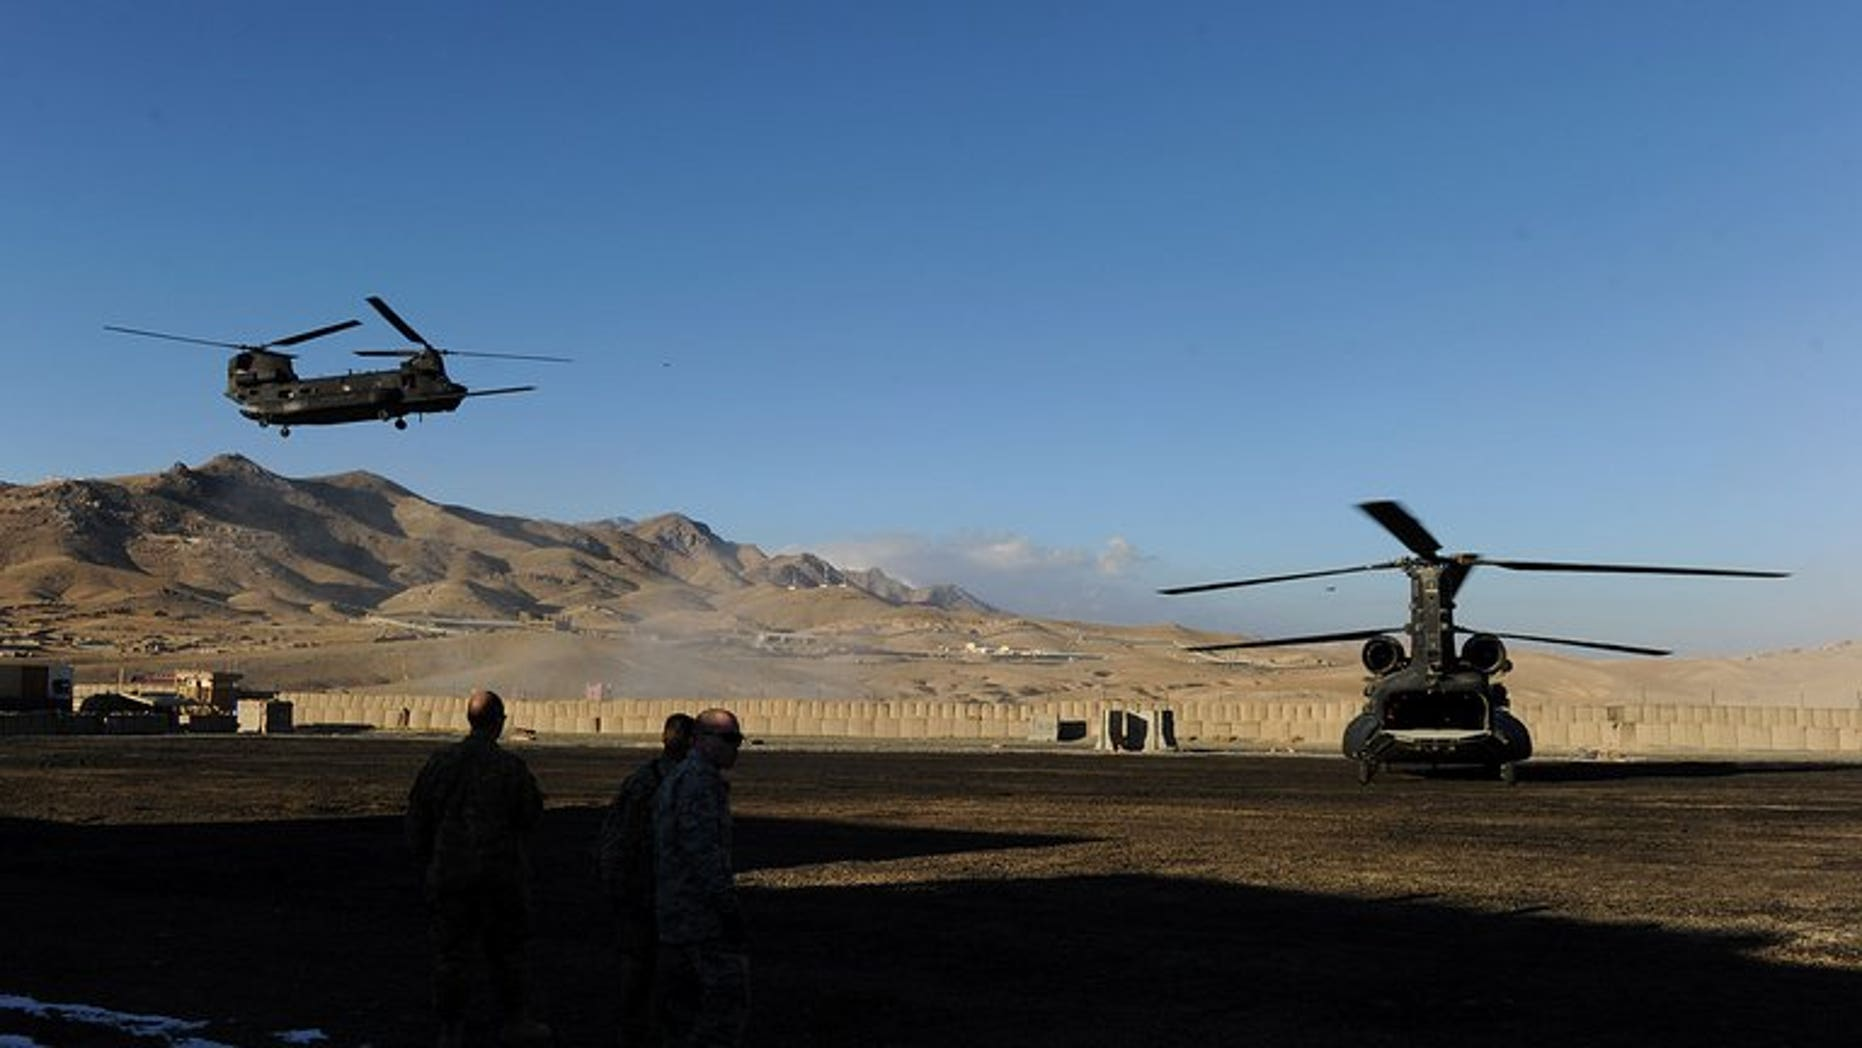 A US military helicopter prepares to land at a US base in Maidan Shar Wardak province on January 11, 2011. Afghanistan's intelligence agency is holding an Afghan-American translator on suspicion of torturing and killing civilians while working for US special forces, officials said Monday